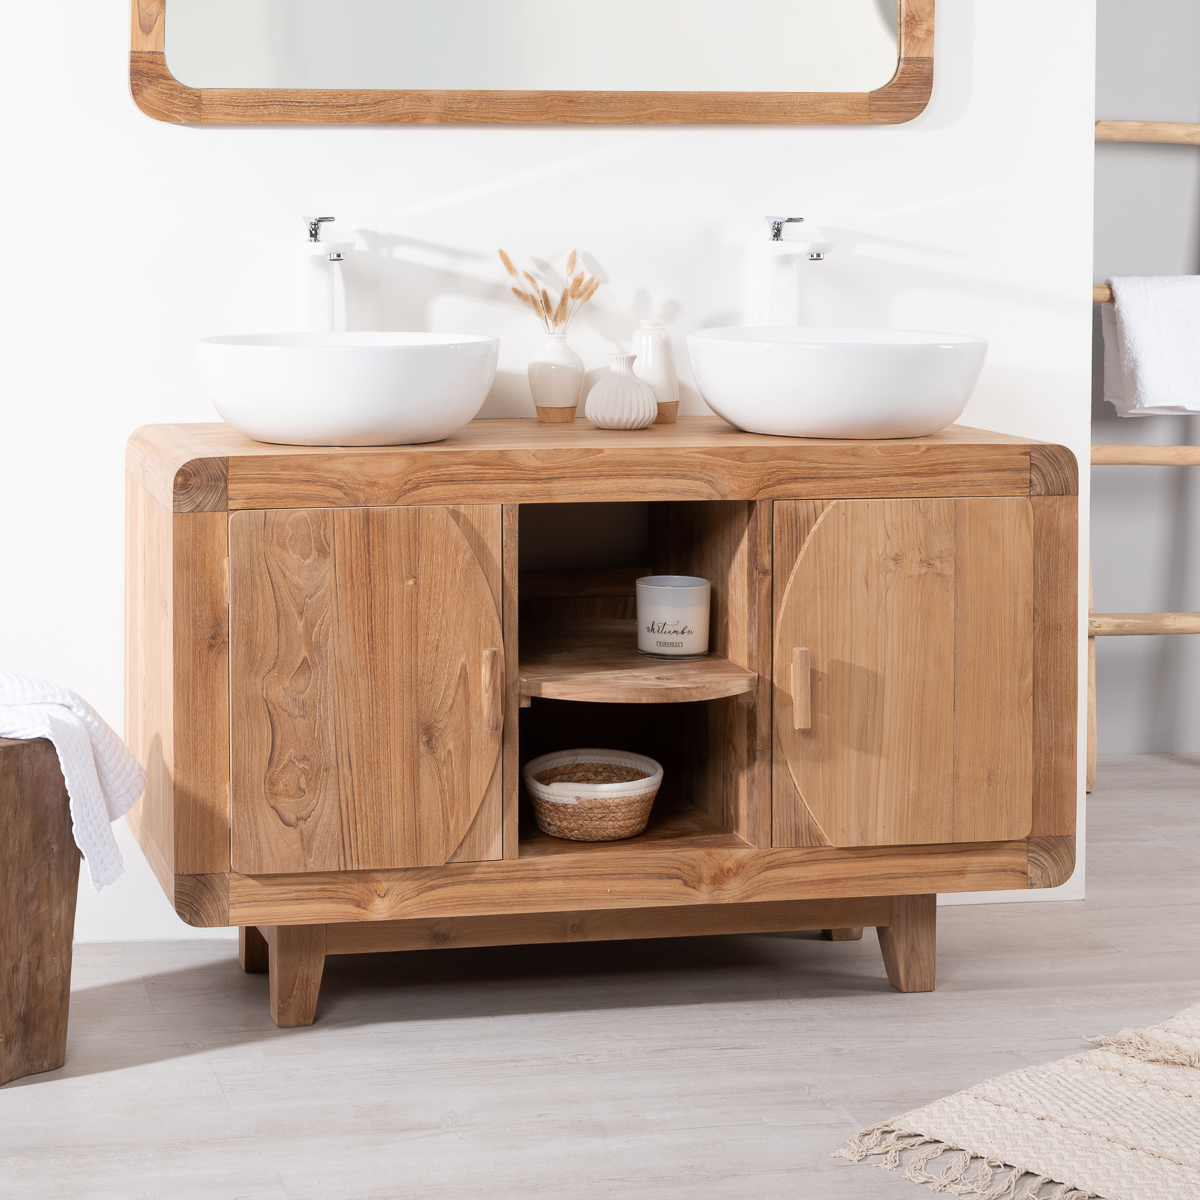 meuble vasque salle de bain retro avec des id es int ressantes pour la conception. Black Bedroom Furniture Sets. Home Design Ideas